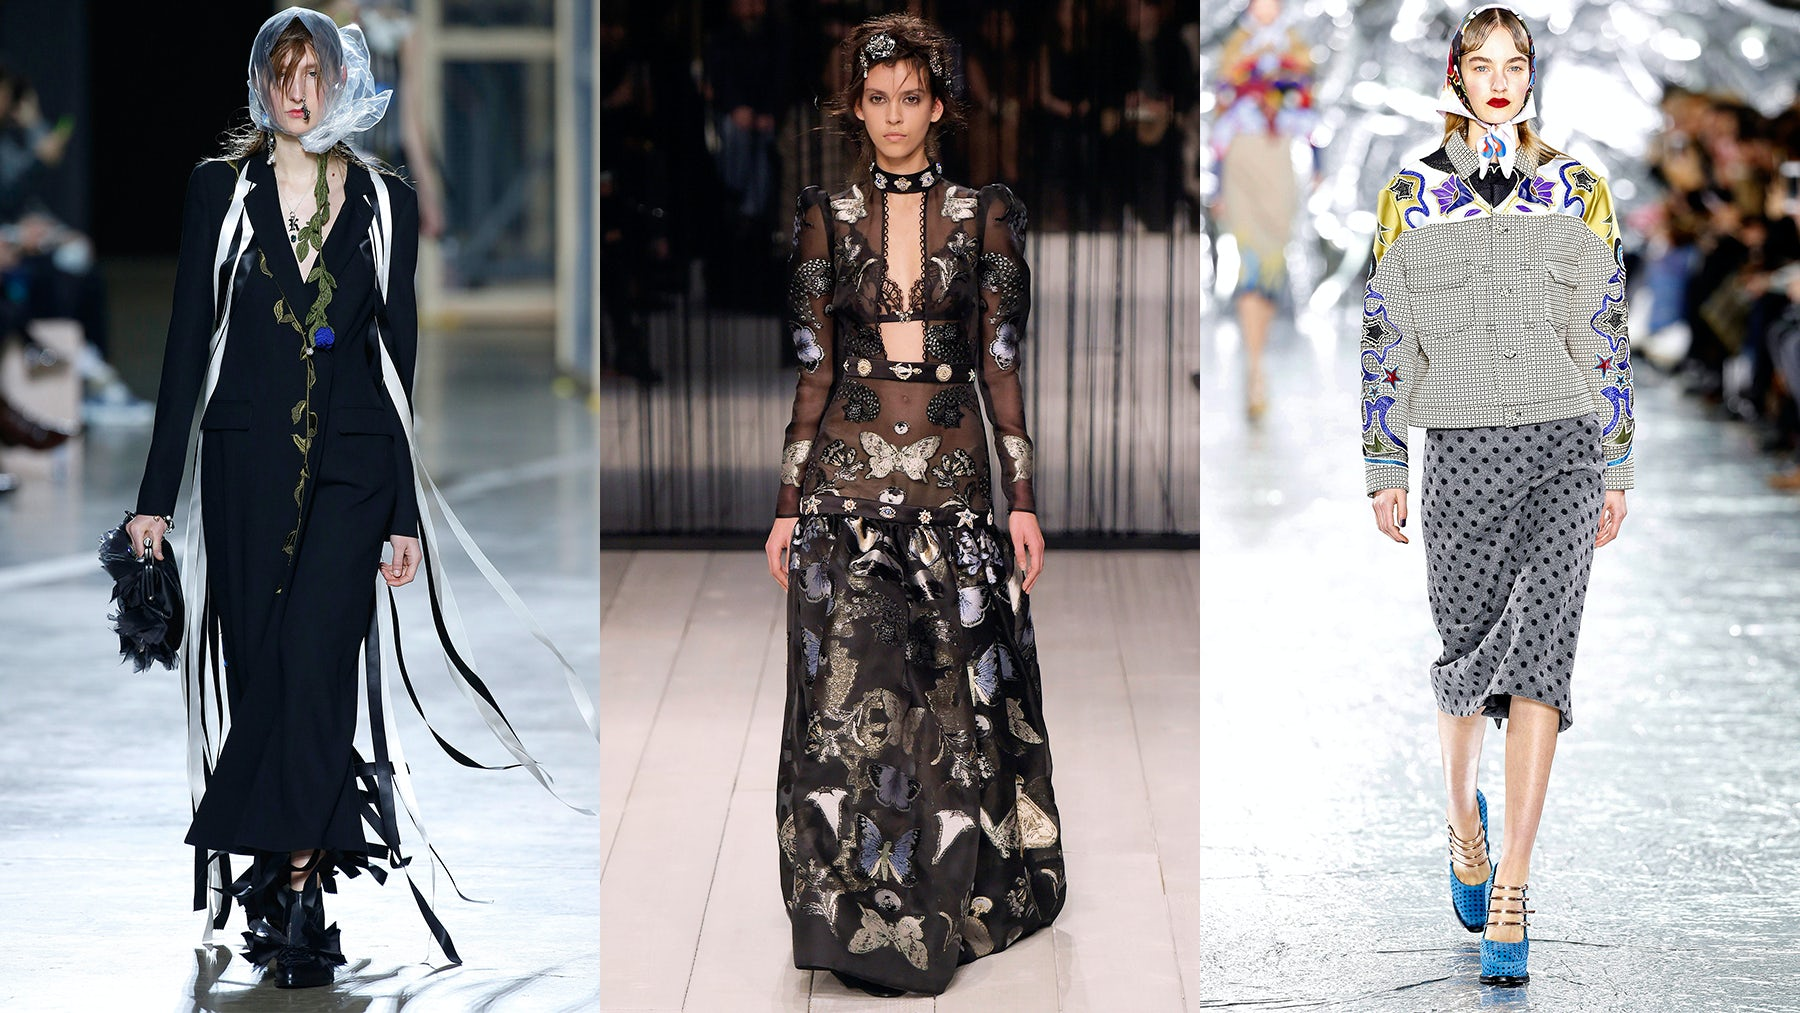 (From L-R) Christopher Kane Autumn/Winter 2016, Alexander McQueen Autumn/Winter 2016, Mary Katrantzou Autumn/Winter 2016 | Source: InDigital.tv